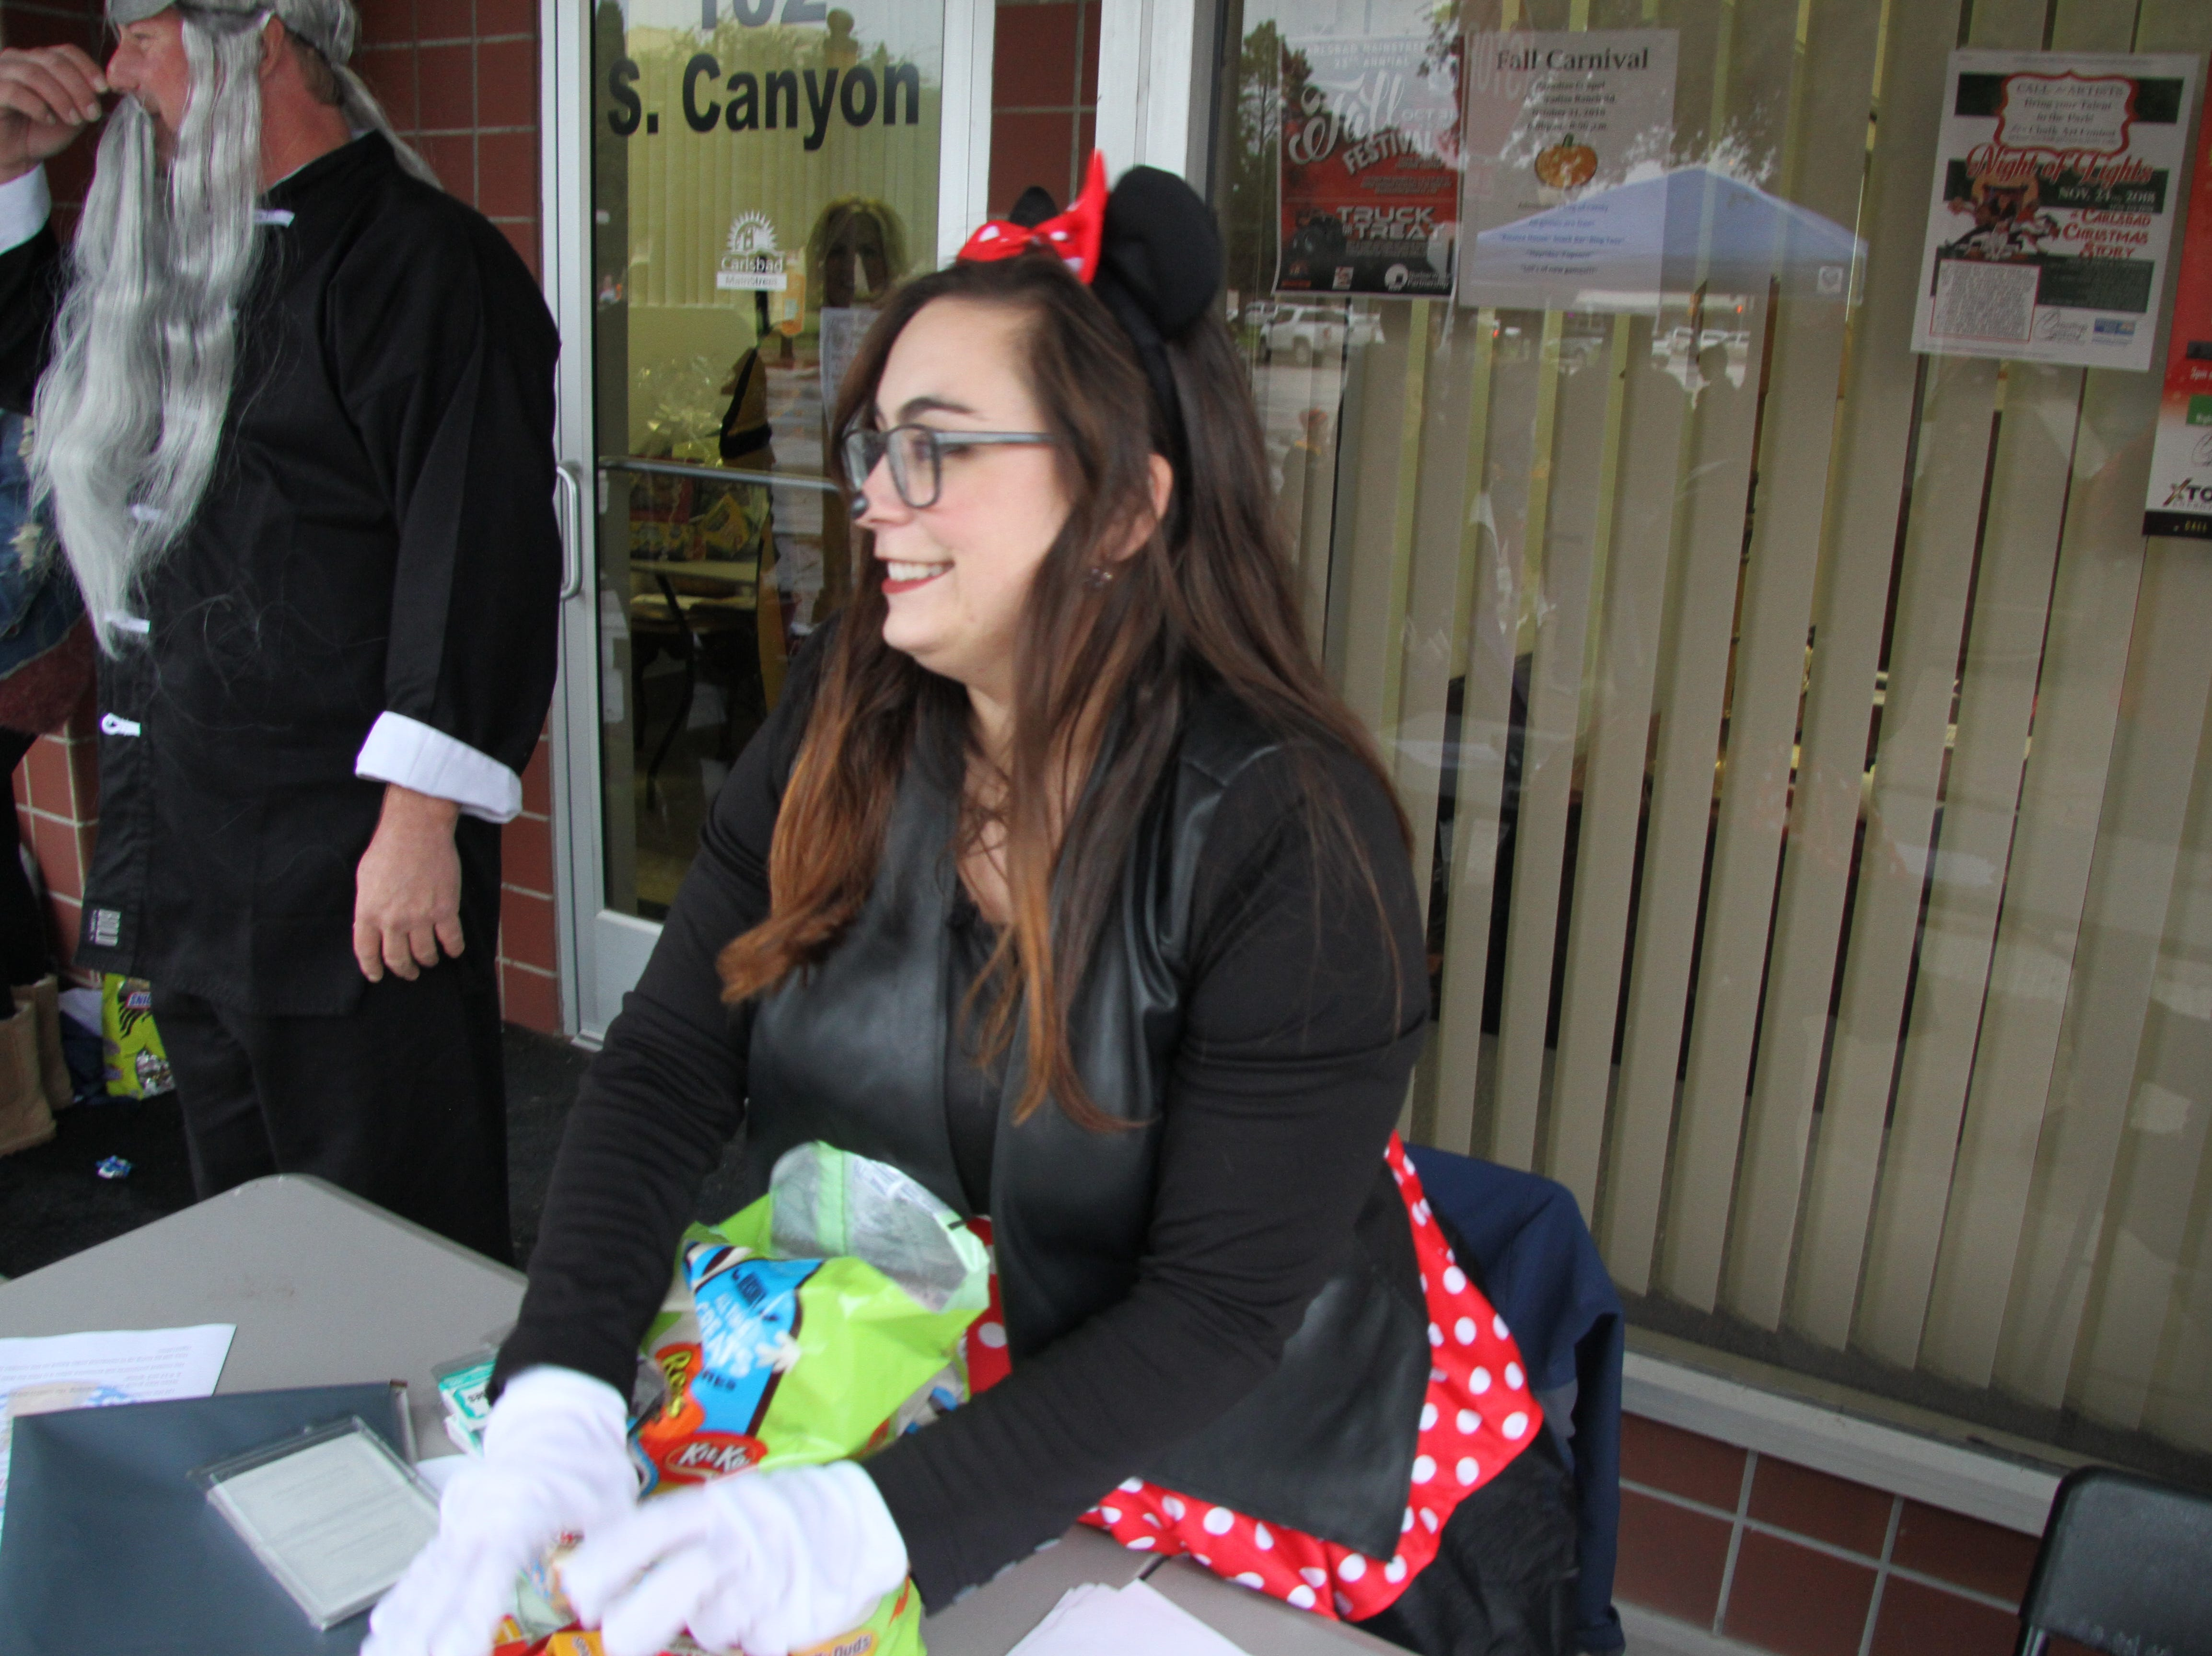 Shannon Carr of the Carlsbad Department of Development gets ready to pass out candy to trick-or-treaters during Halloween's Fall Festival.